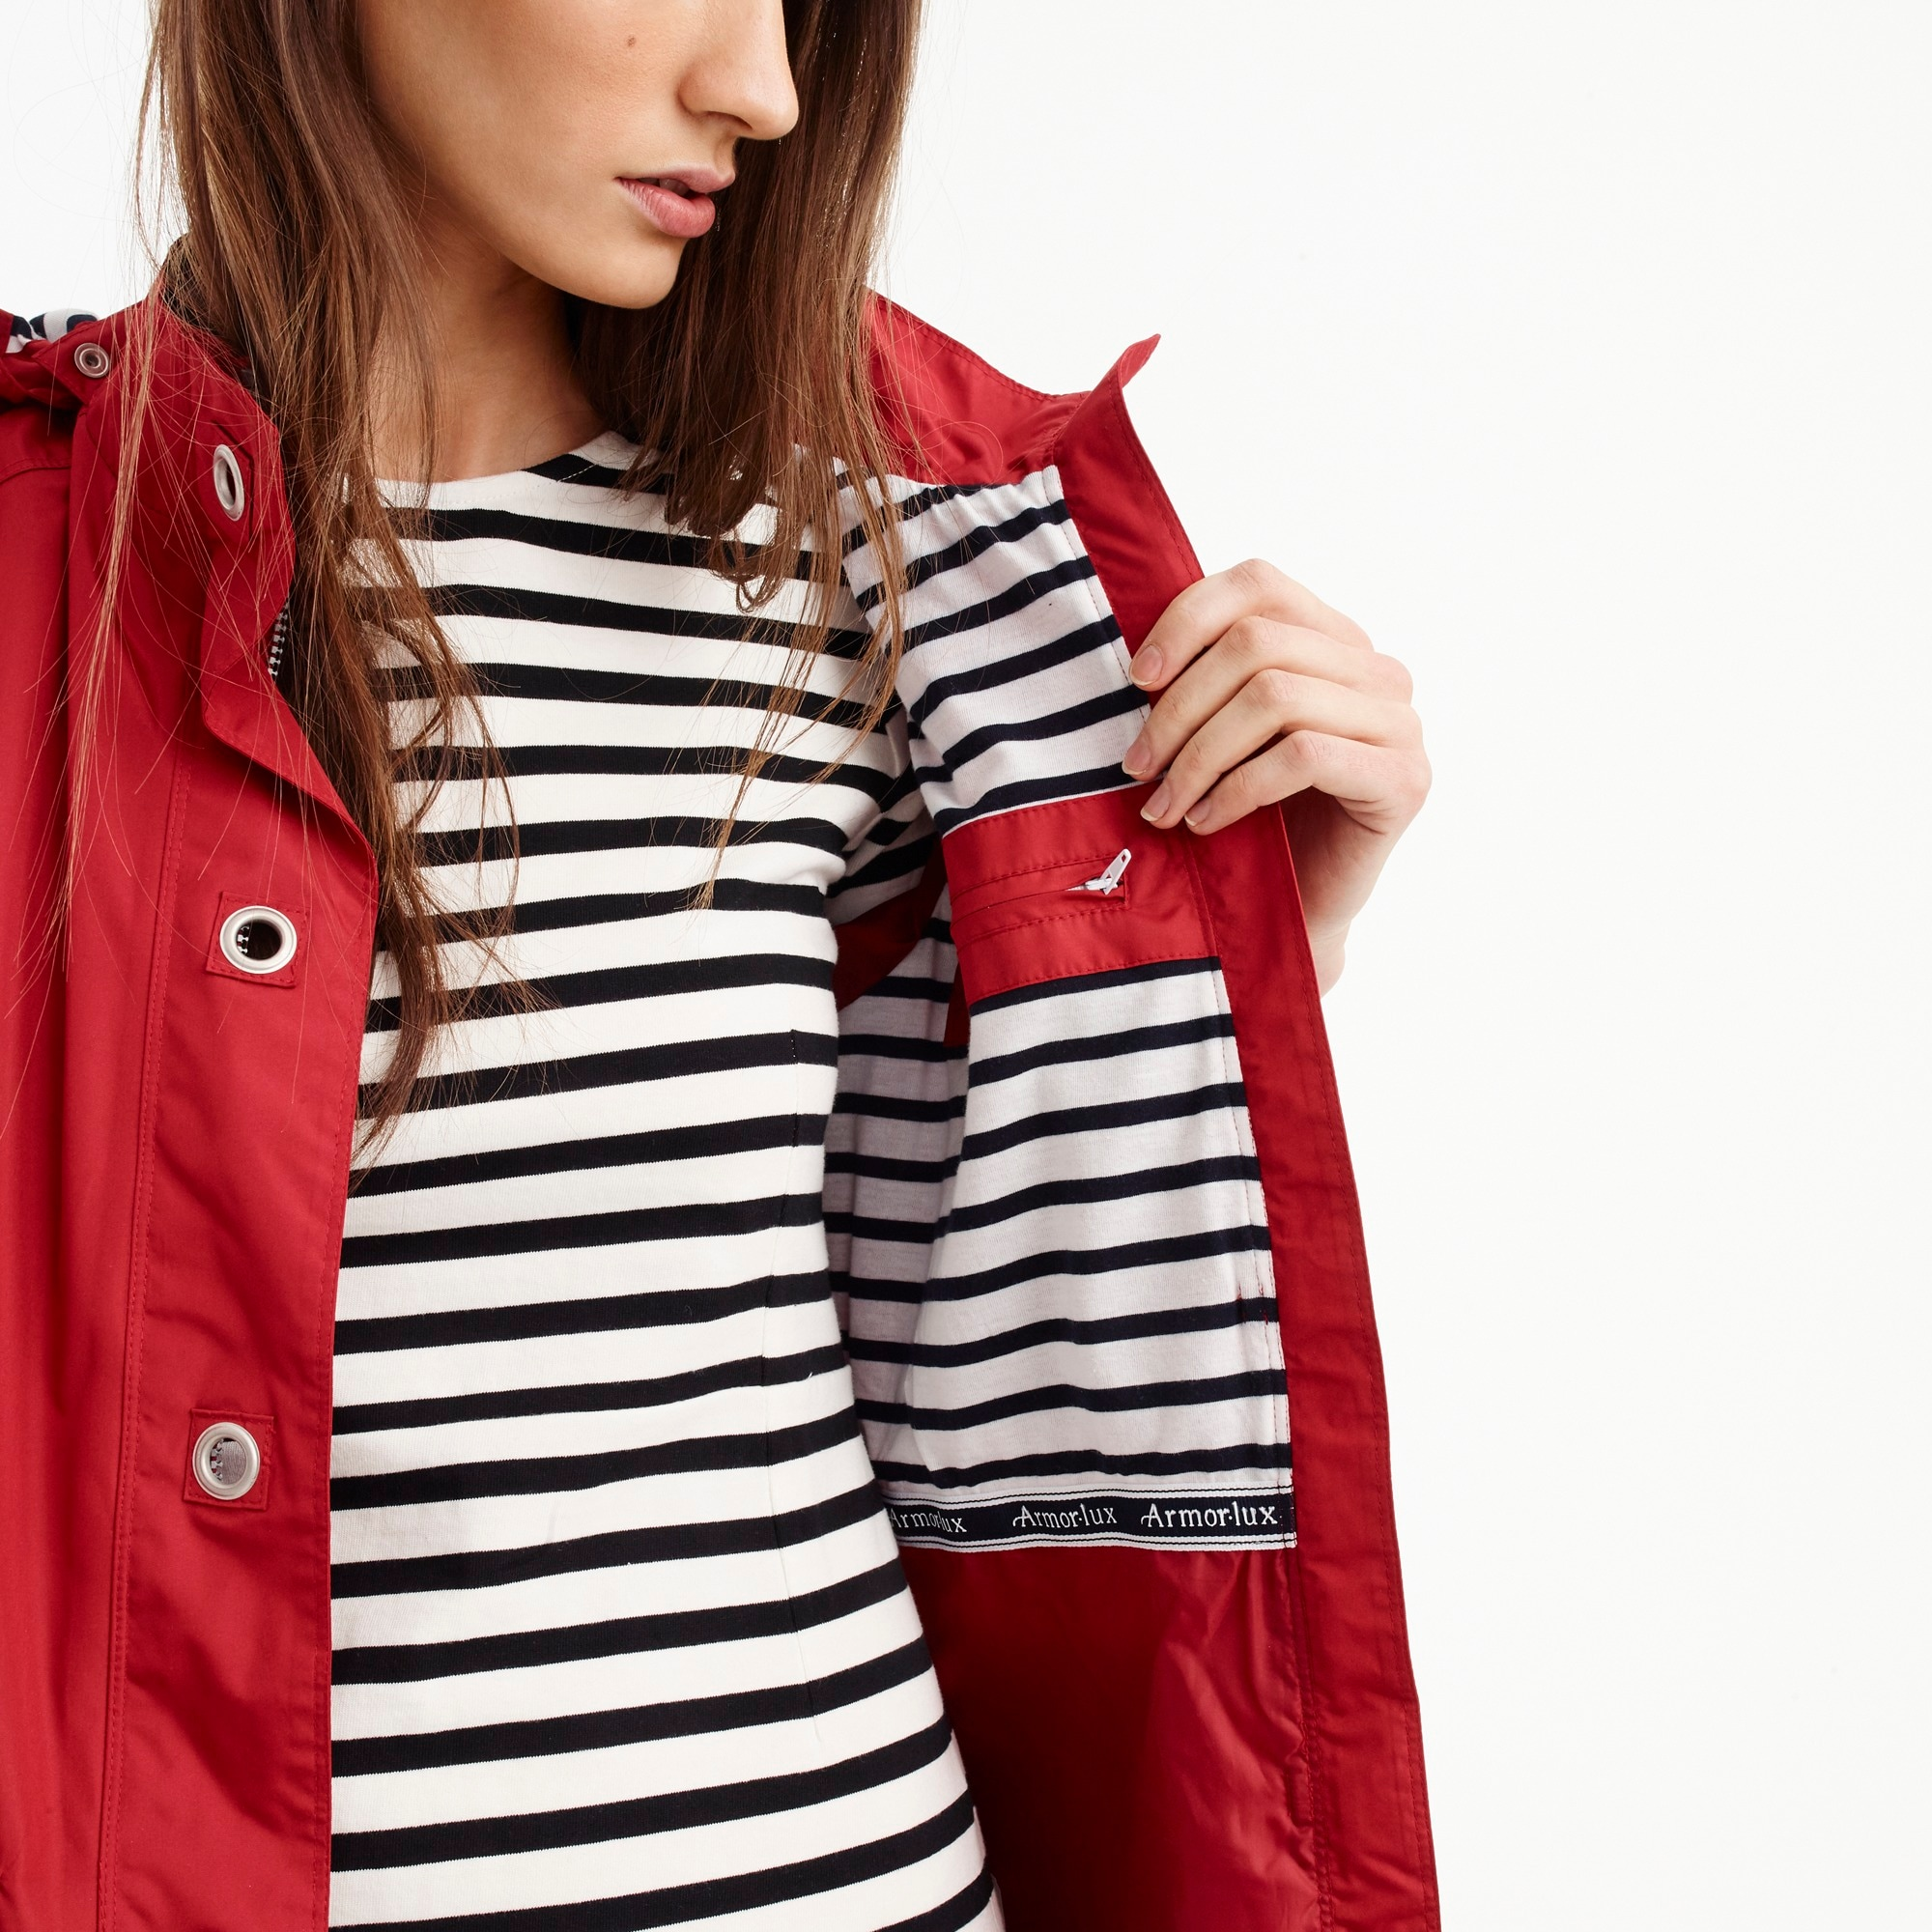 Image 2 for Armor-Lux® for J.Crew raincoat with striped lining